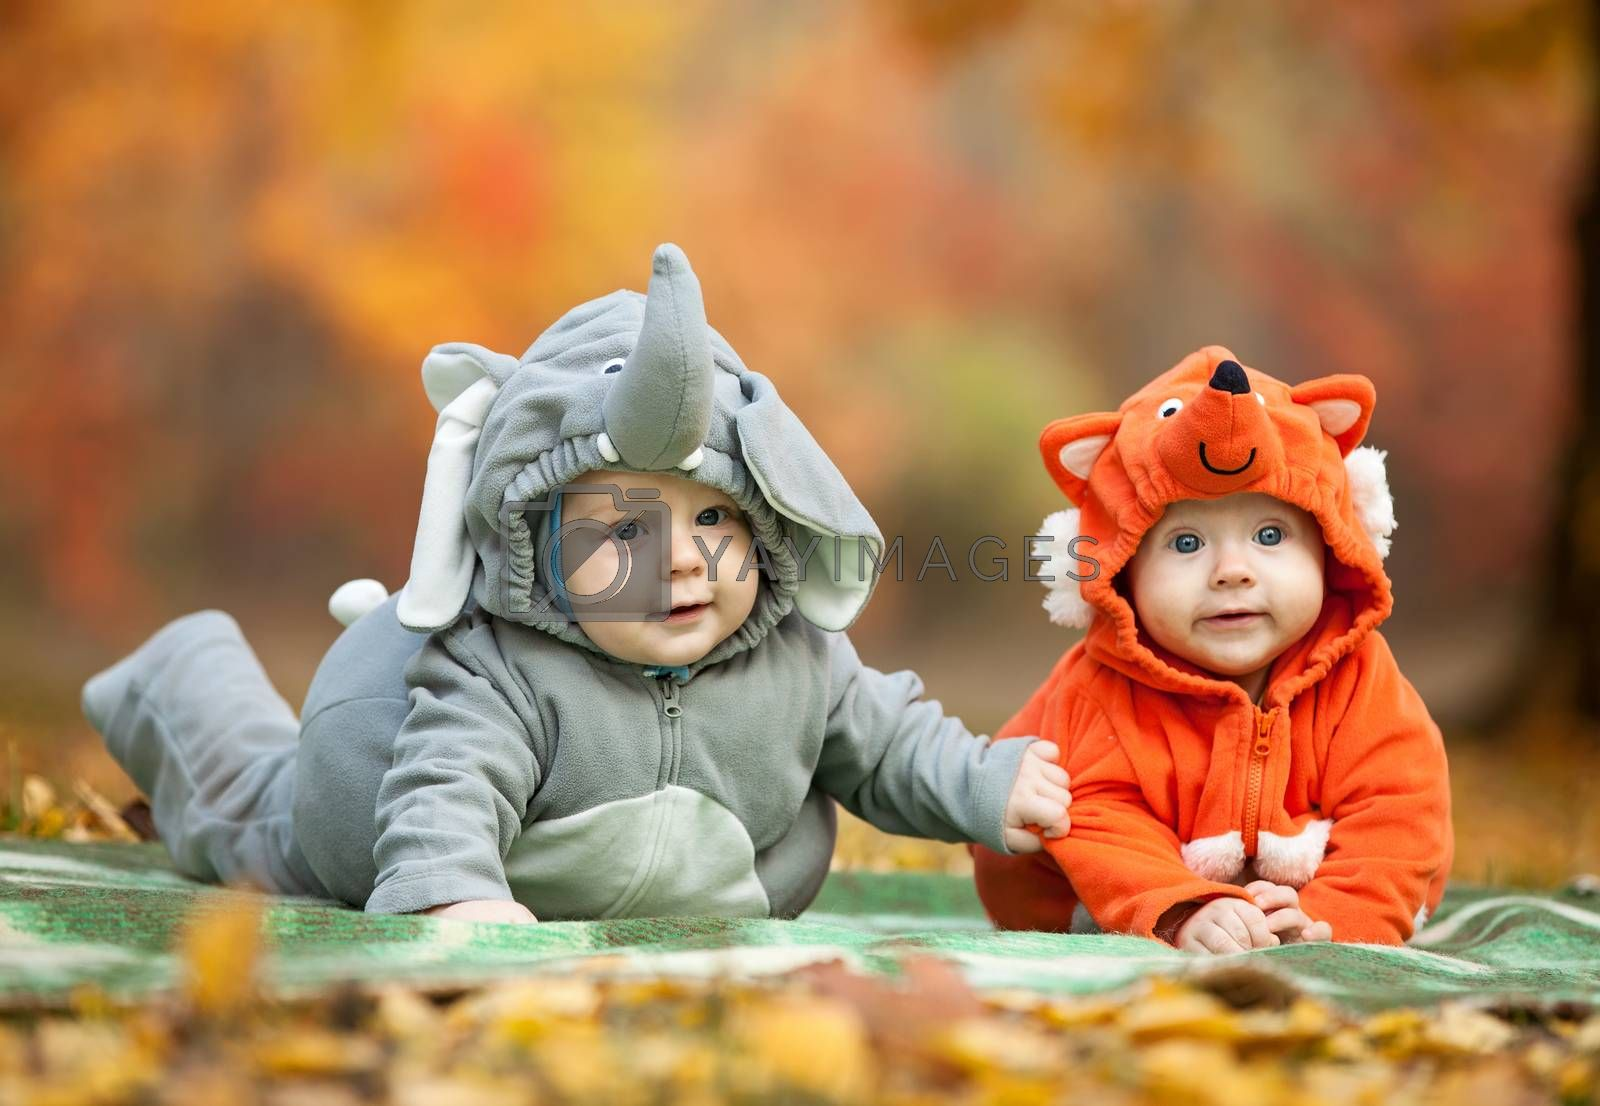 Two baby boys dressed in animal costumes in autumn park, focus on baby in elephant costume